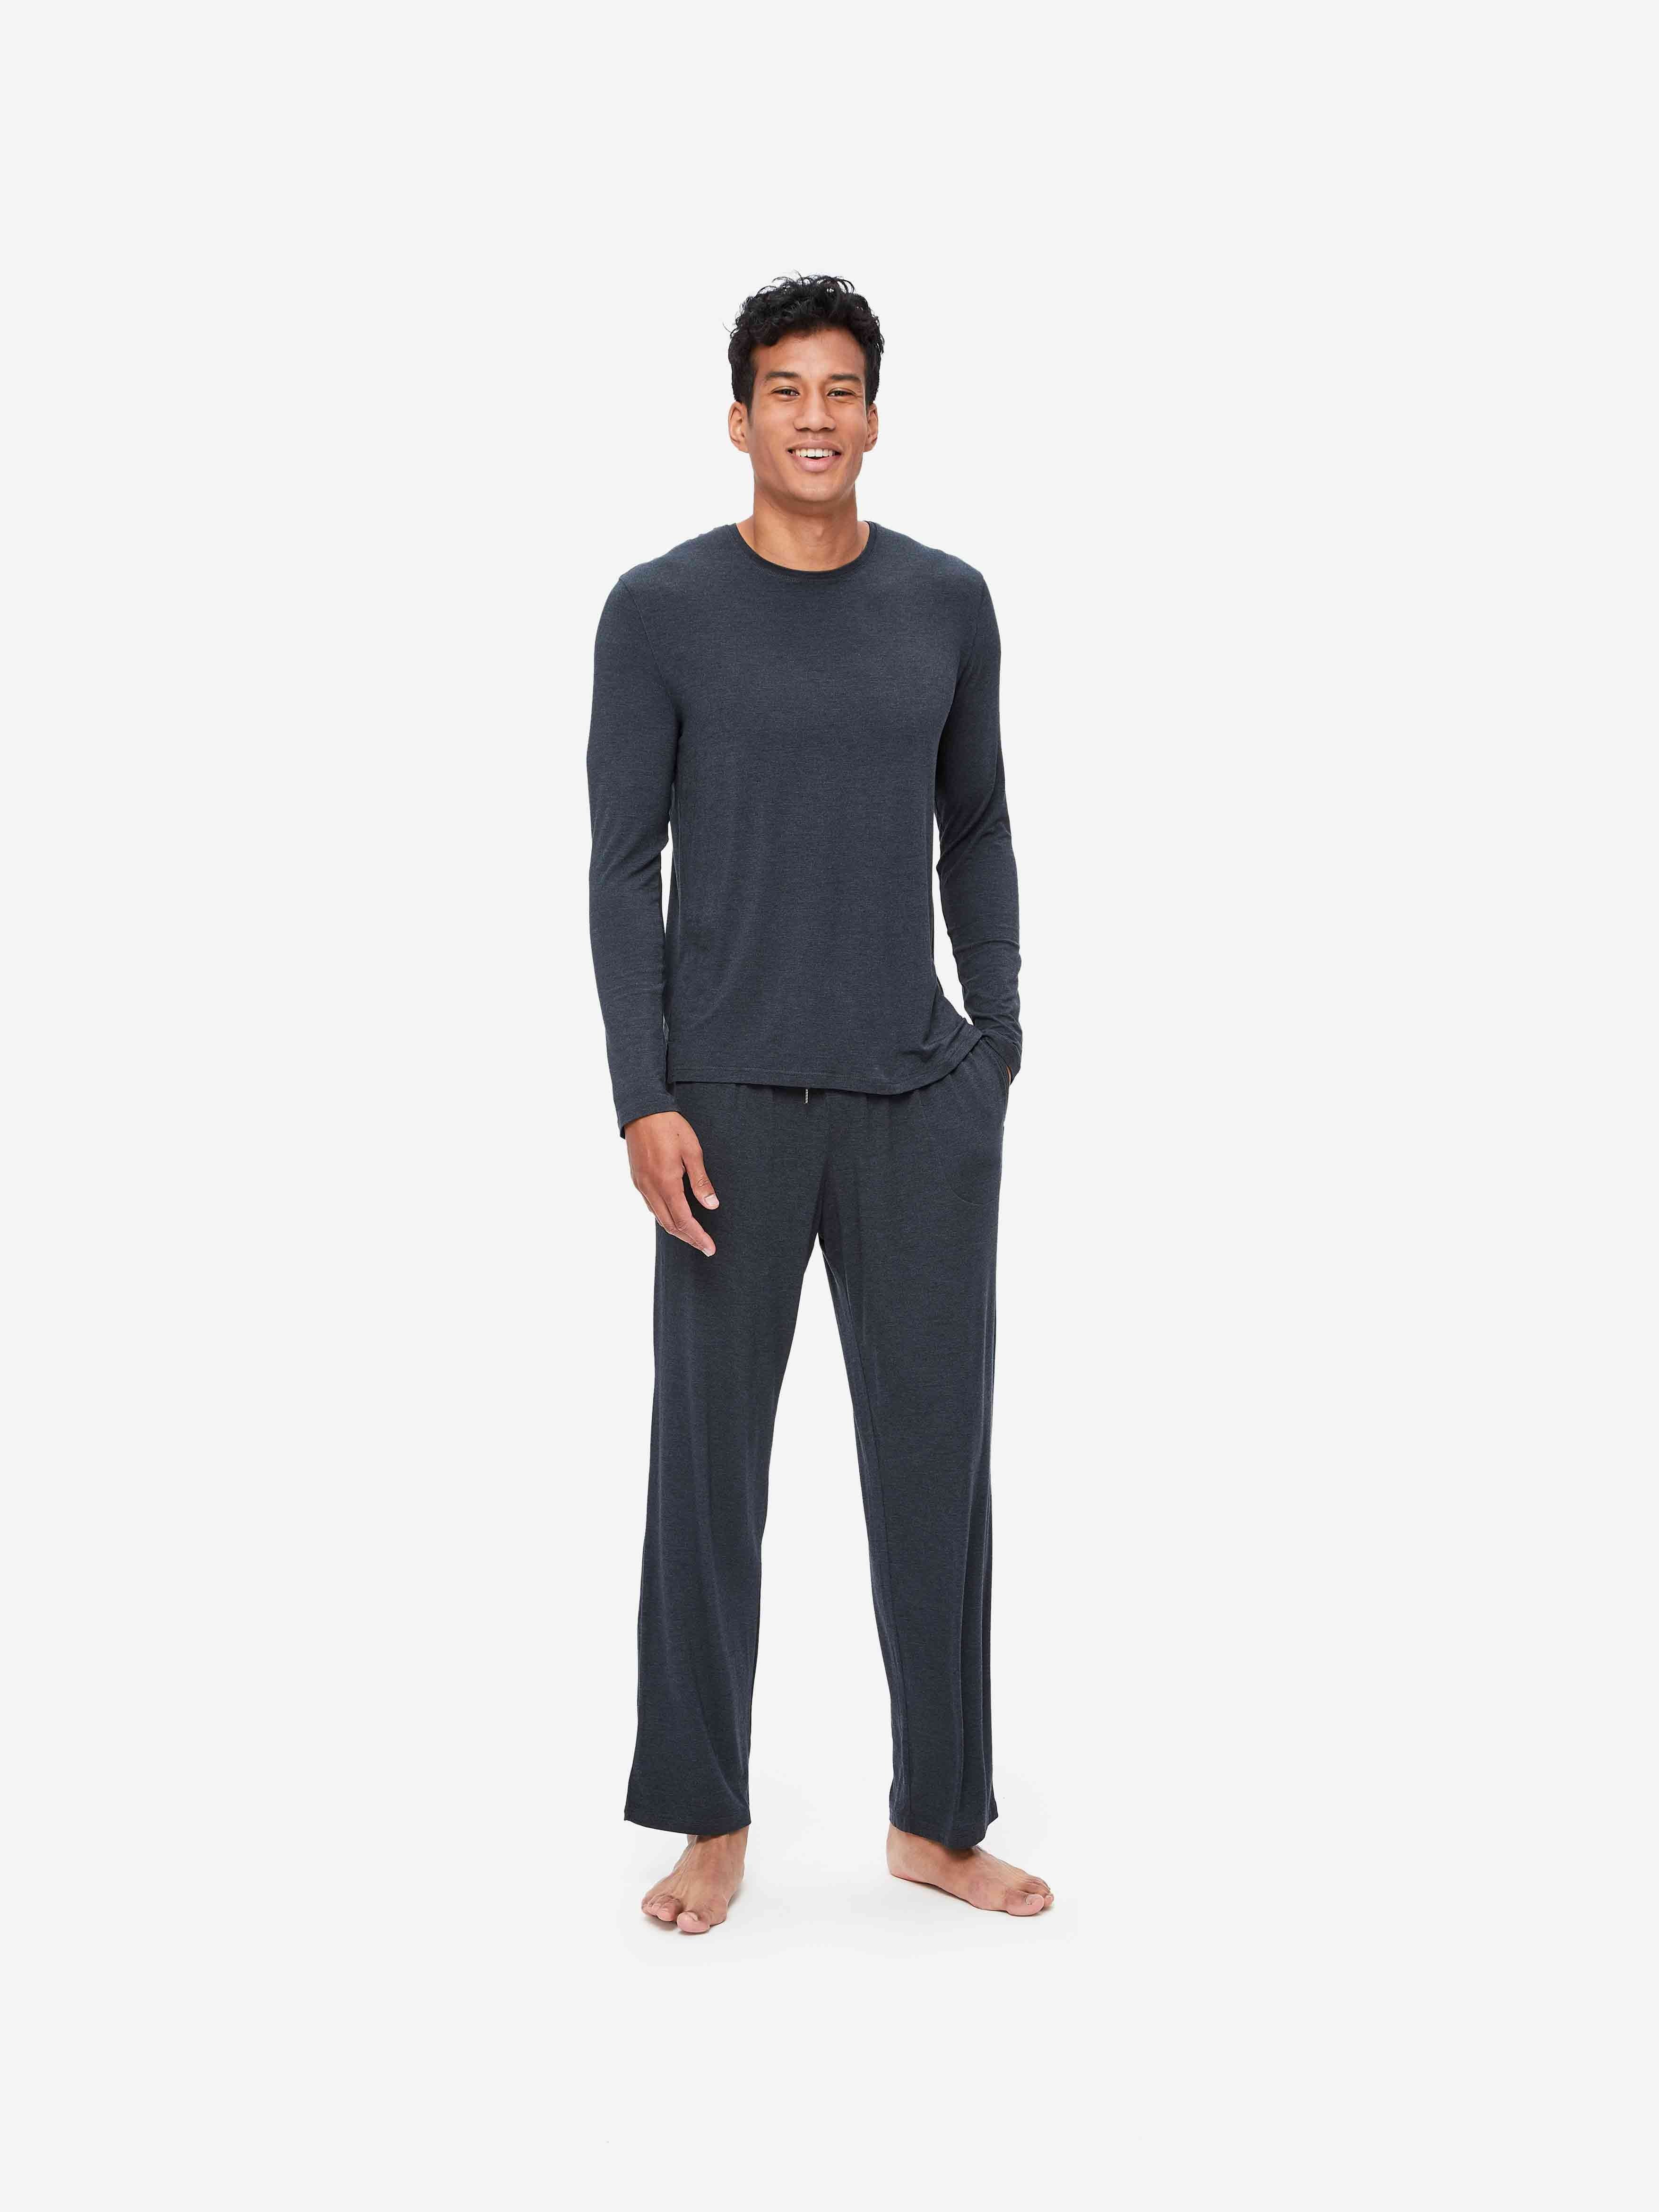 Men's Lounge Trousers Marlowe Micro Modal Stretch Anthracite